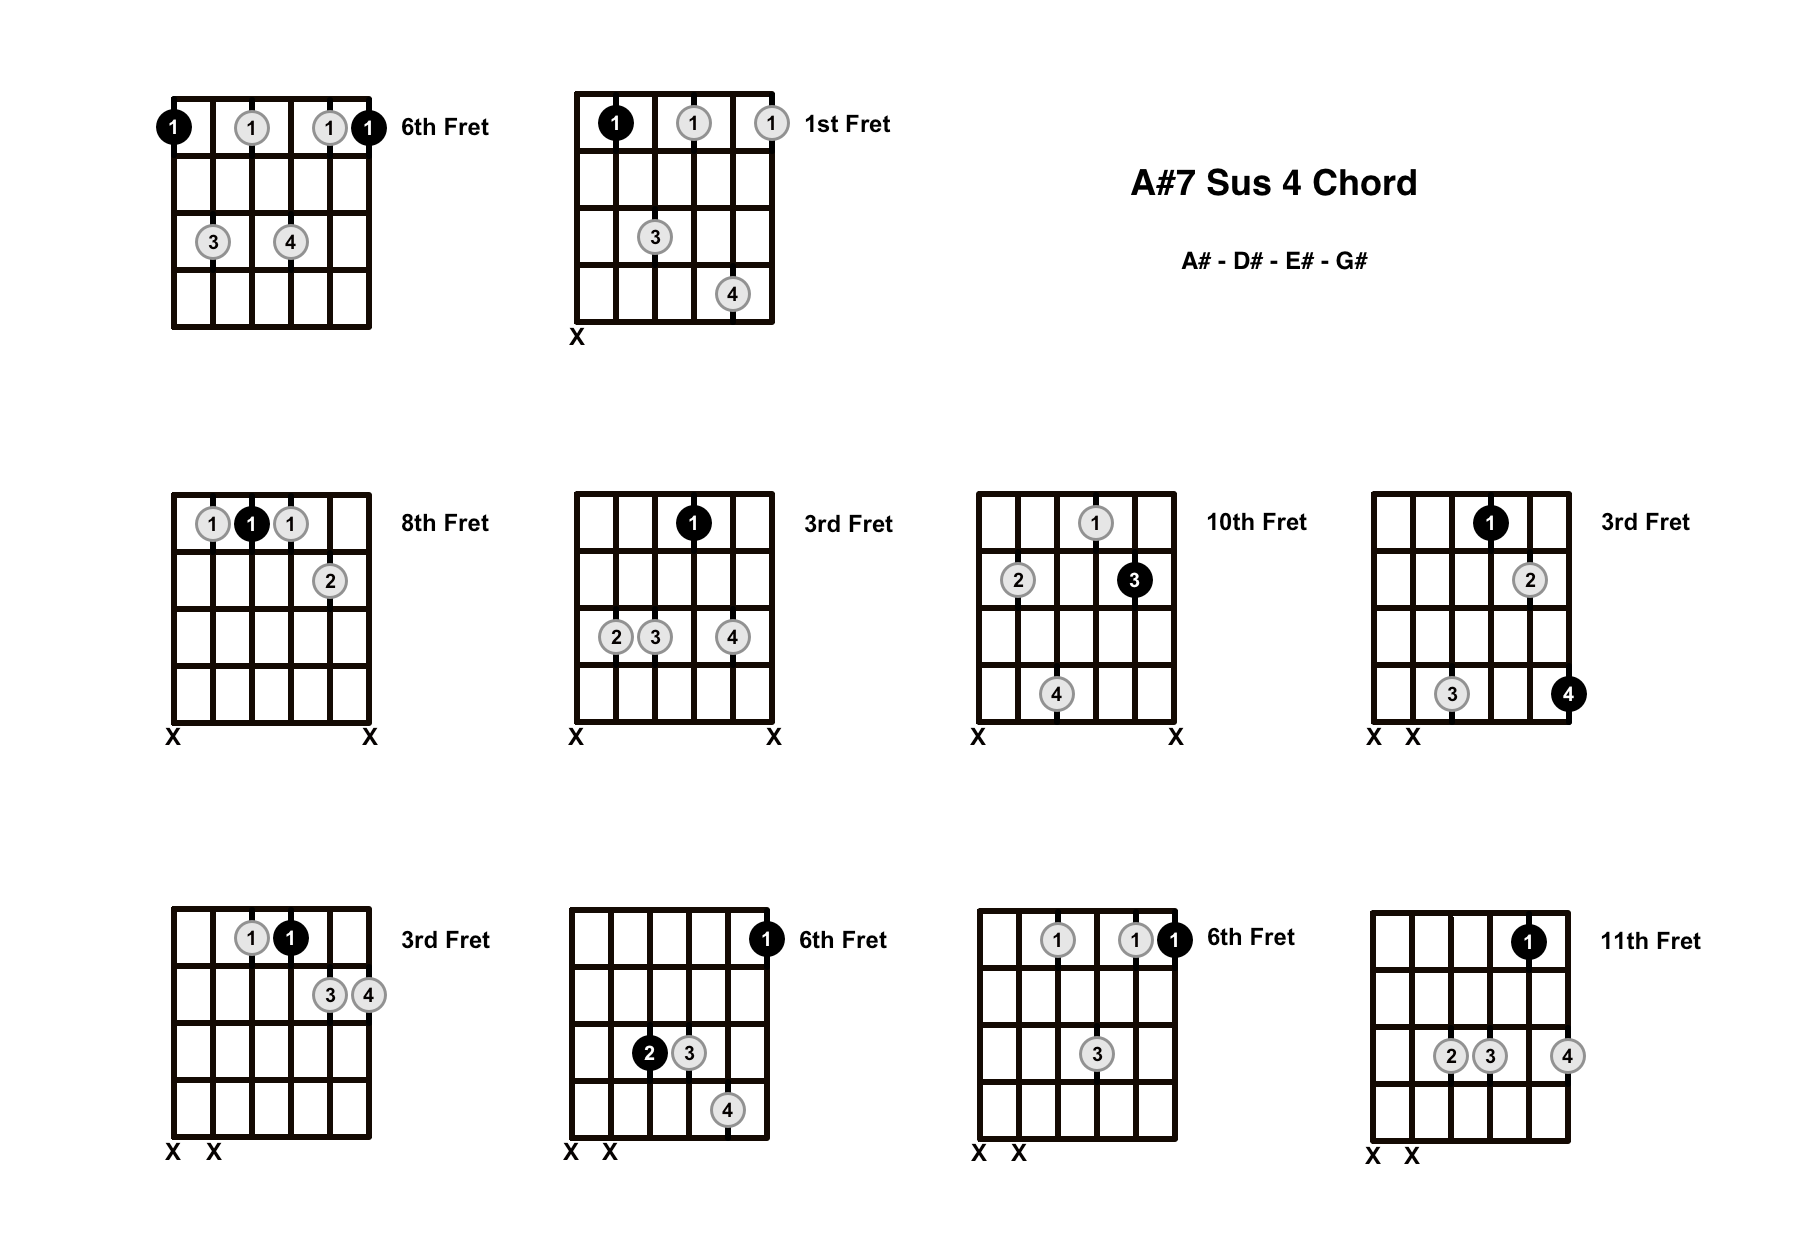 A#7 Sus 4 Chord On The Guitar (A Sharp 7 Suspended 4) – Diagrams, Finger Positions and Theory